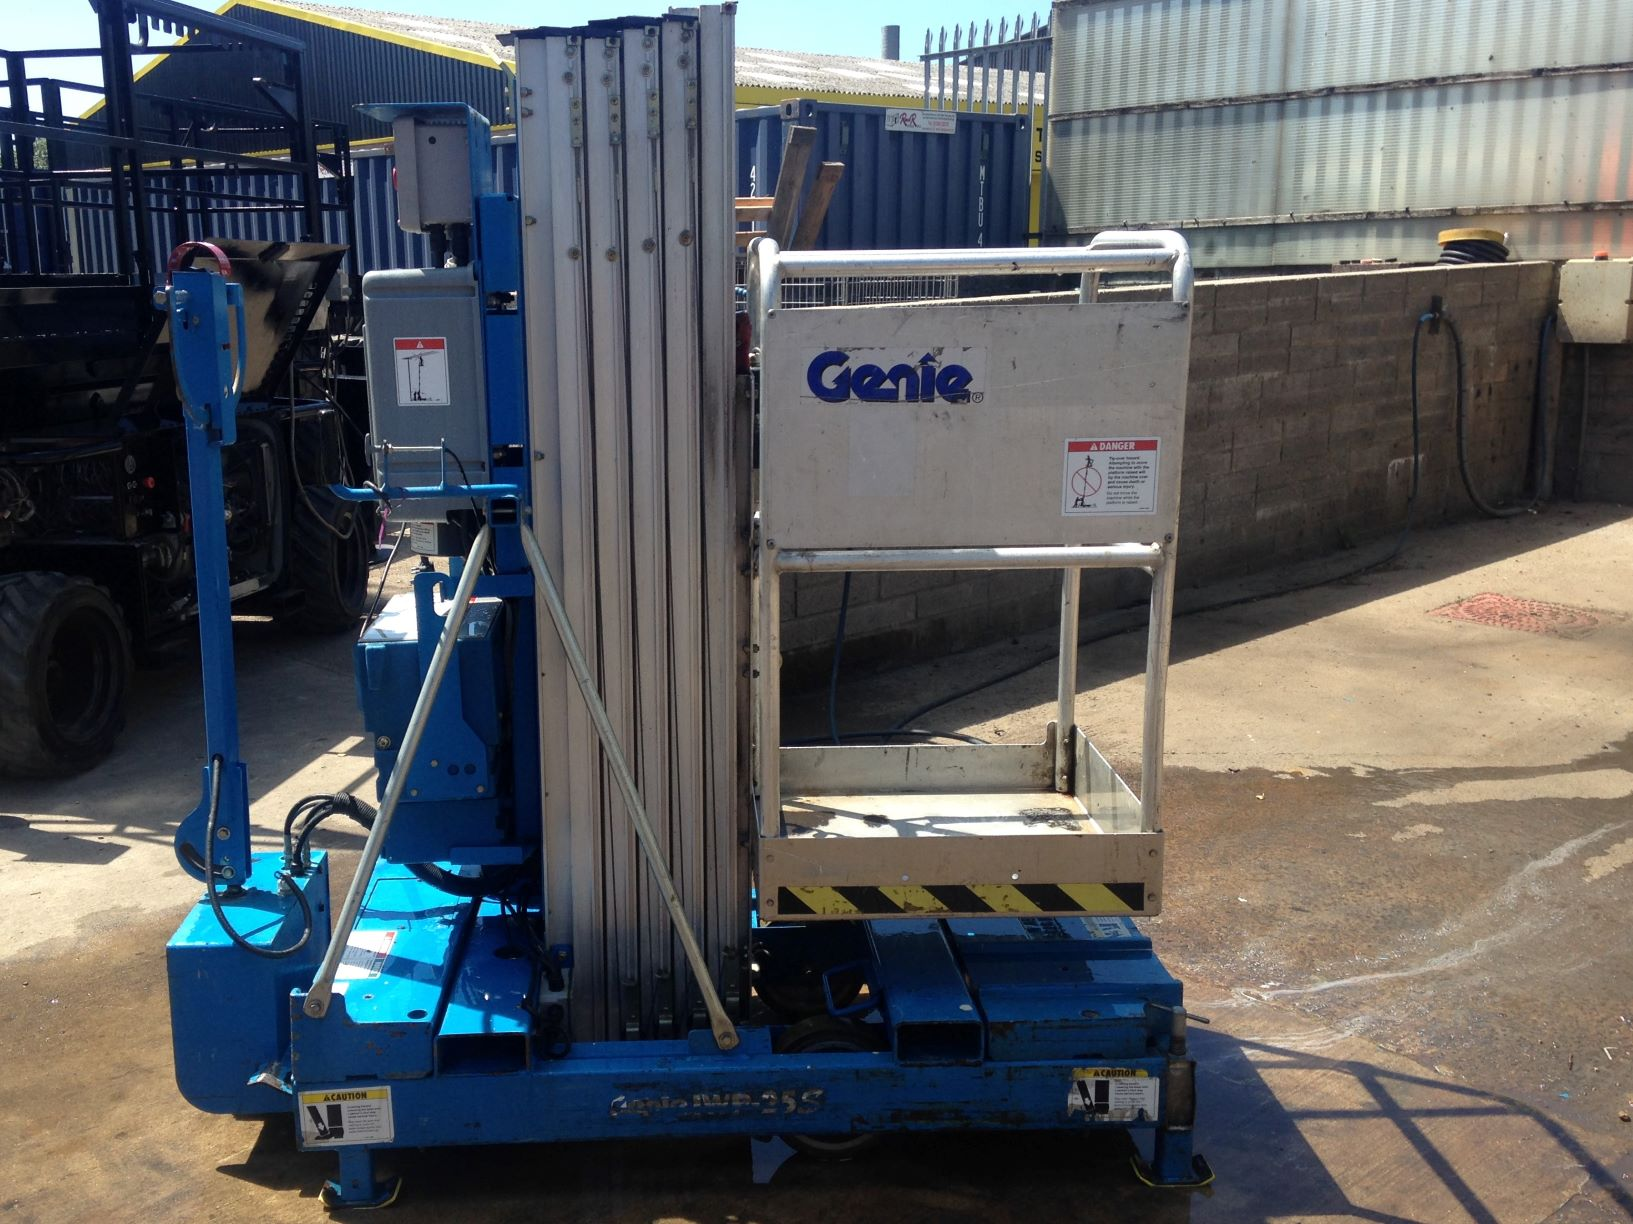 An image of Genie IWP25S with power wheel £2250 +VAT goes here.